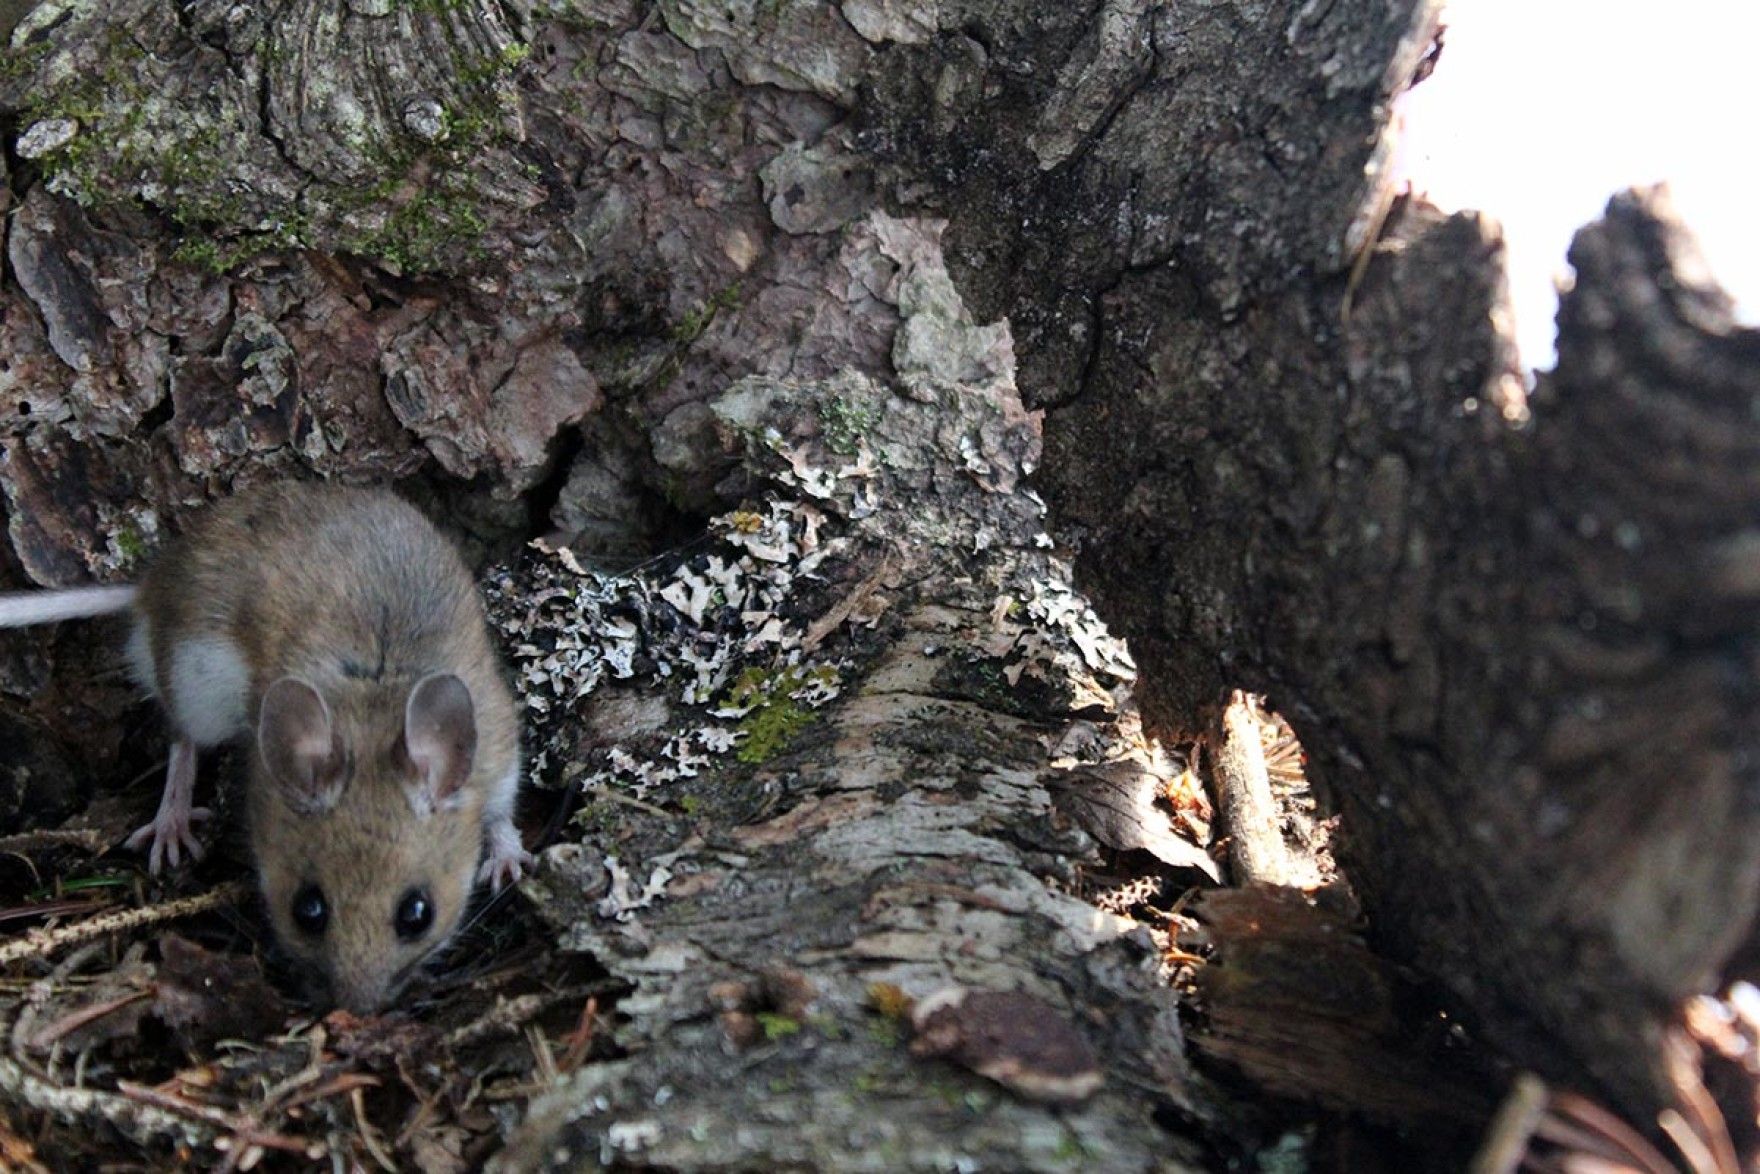 Mouse on forest floor with tree bark